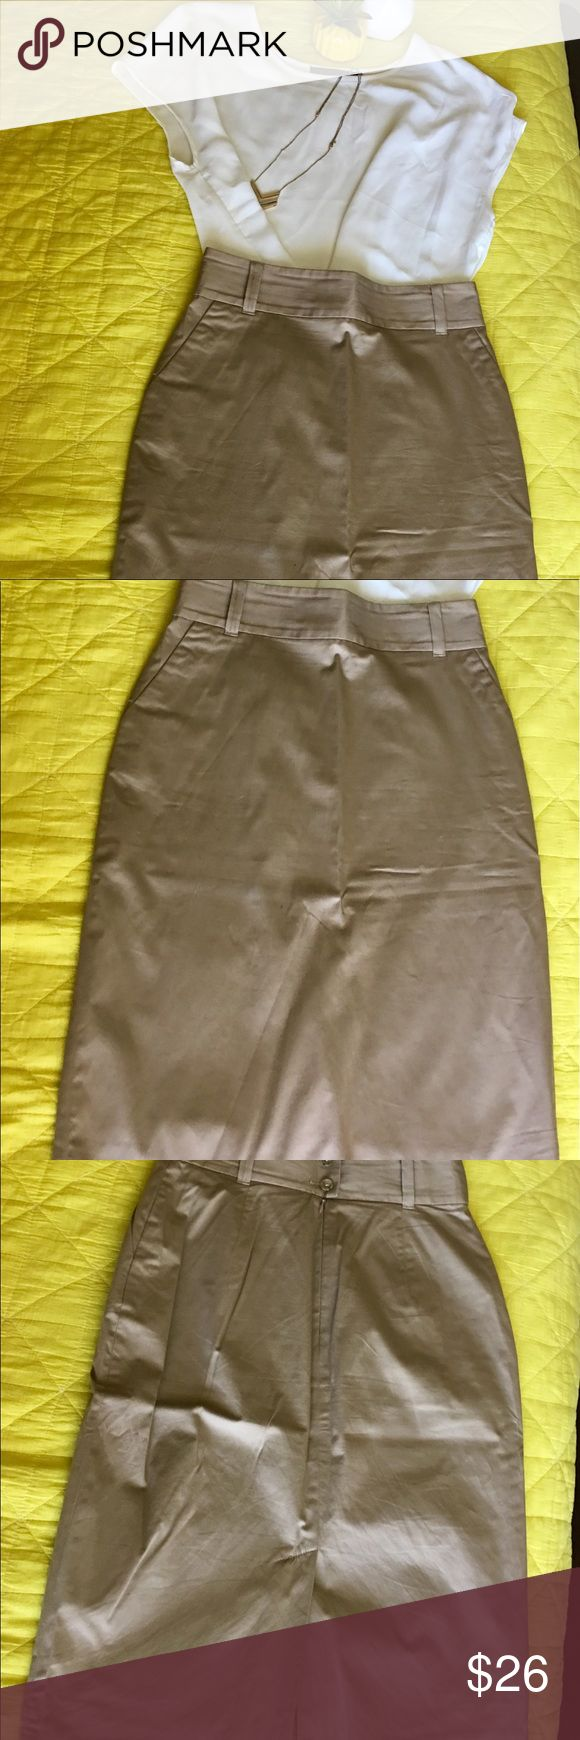 Banana Republic Pencil Skirt over the knee tan Banana Republic Pencil Skirt over the knee dark khaki/ tan. Great condition! Be mindful no lowballing! Banana Republic Skirts Pencil